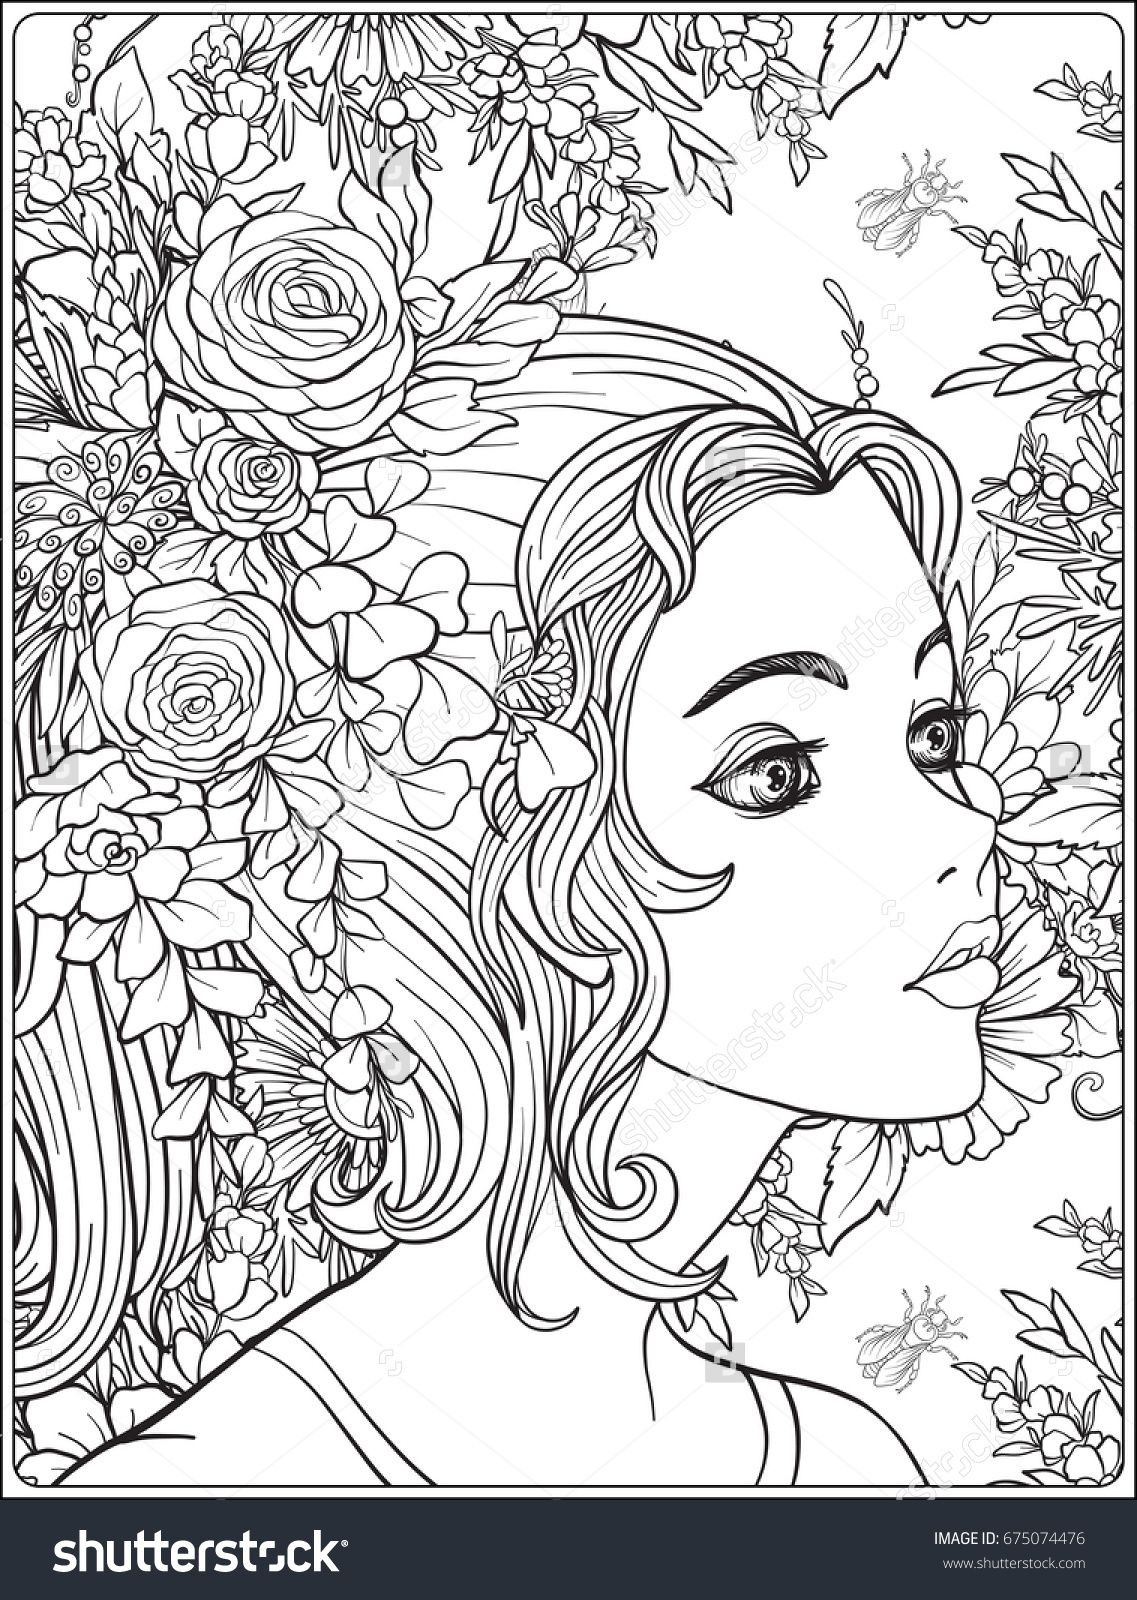 Girl With Paper Cup Coloring Page Stock Vector - Illustration of ... | 1600x1137